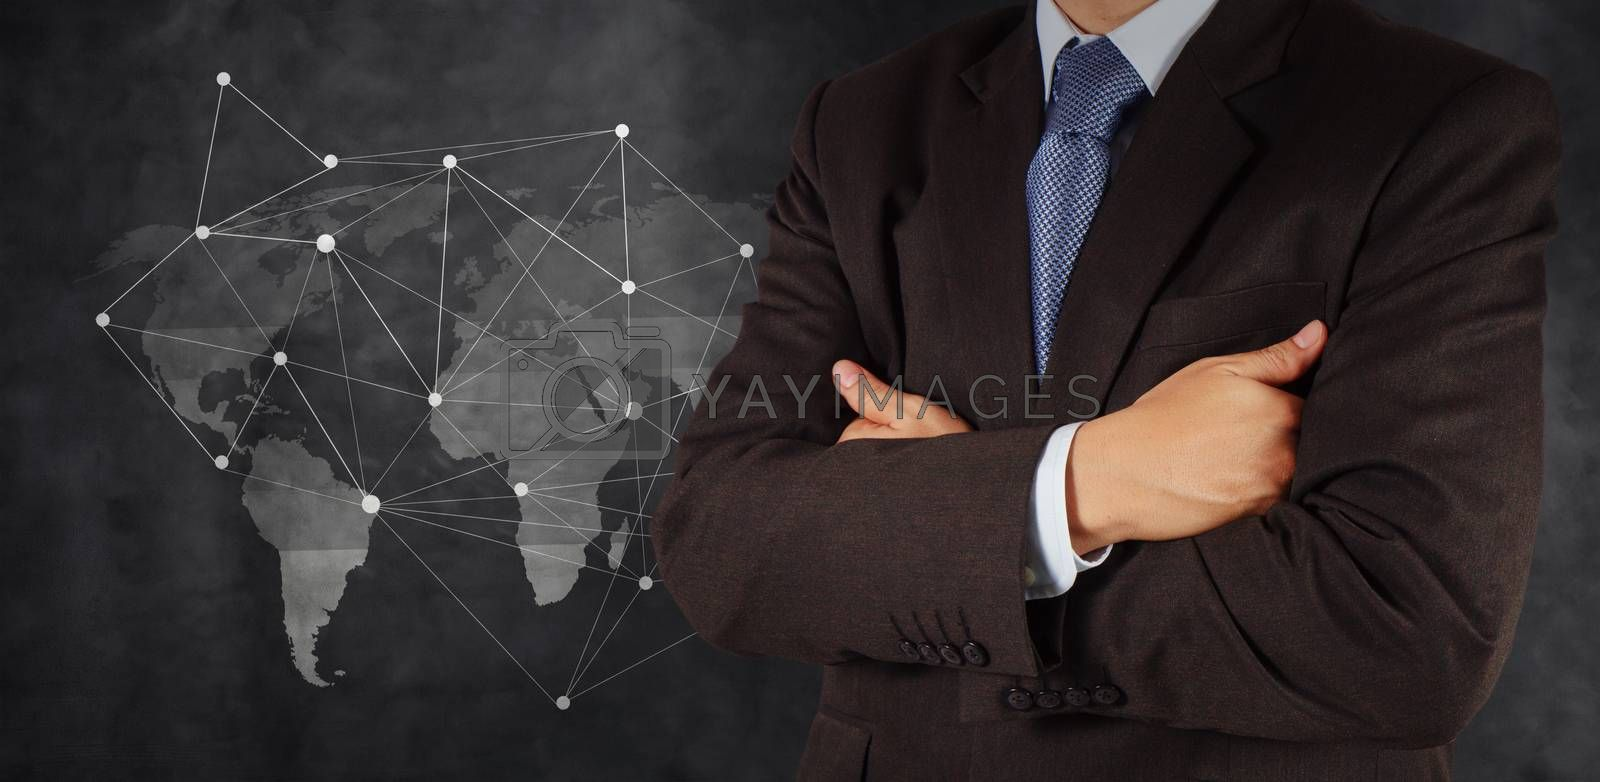 Royalty free image of businessman with social network structure as concept by everythingpossible